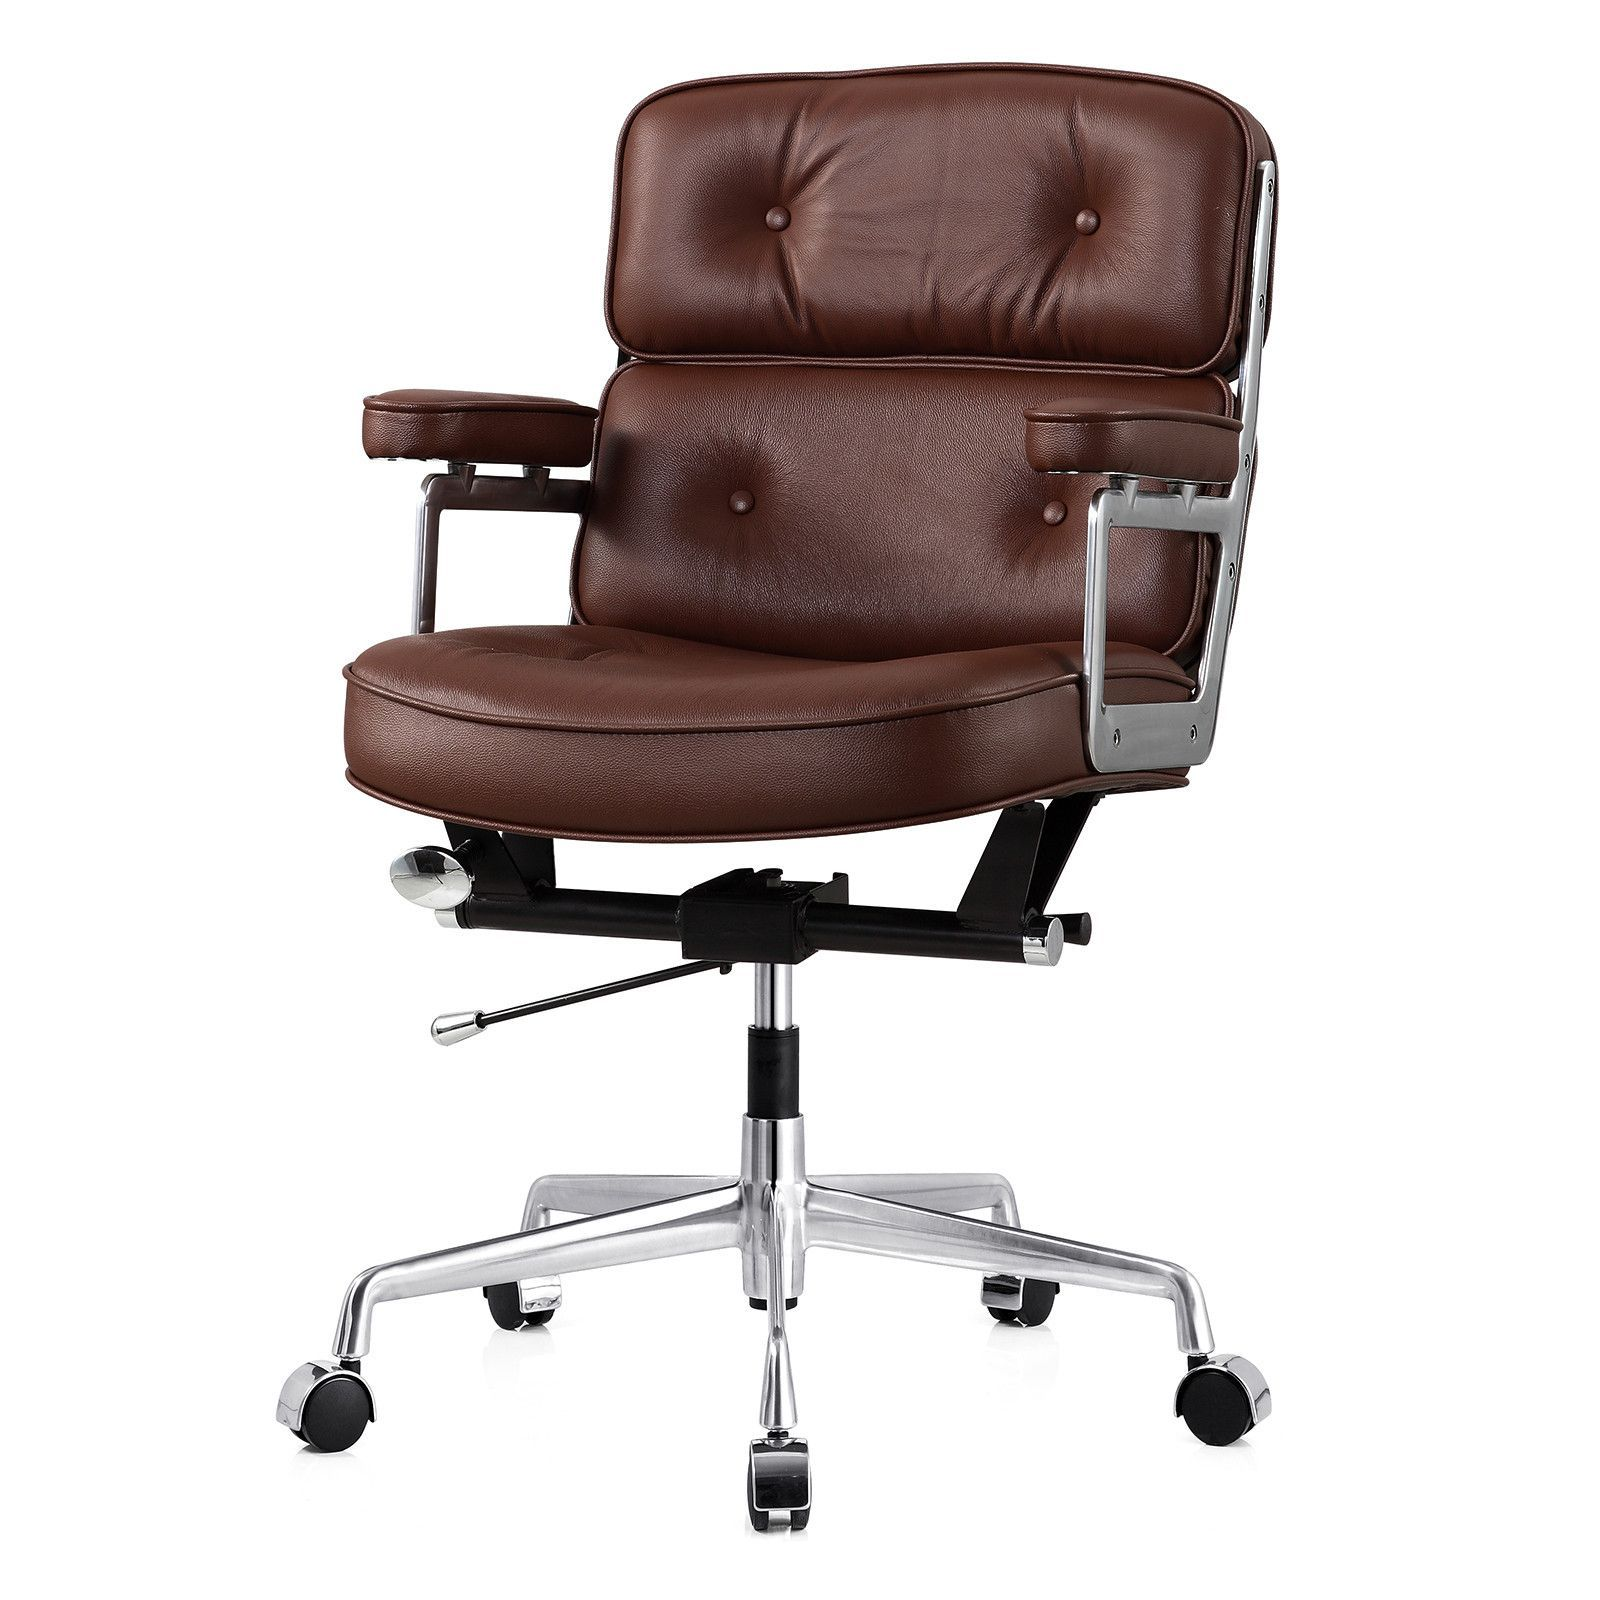 Bankers chair leather - 8891 Series Mid Back Bankers Chair